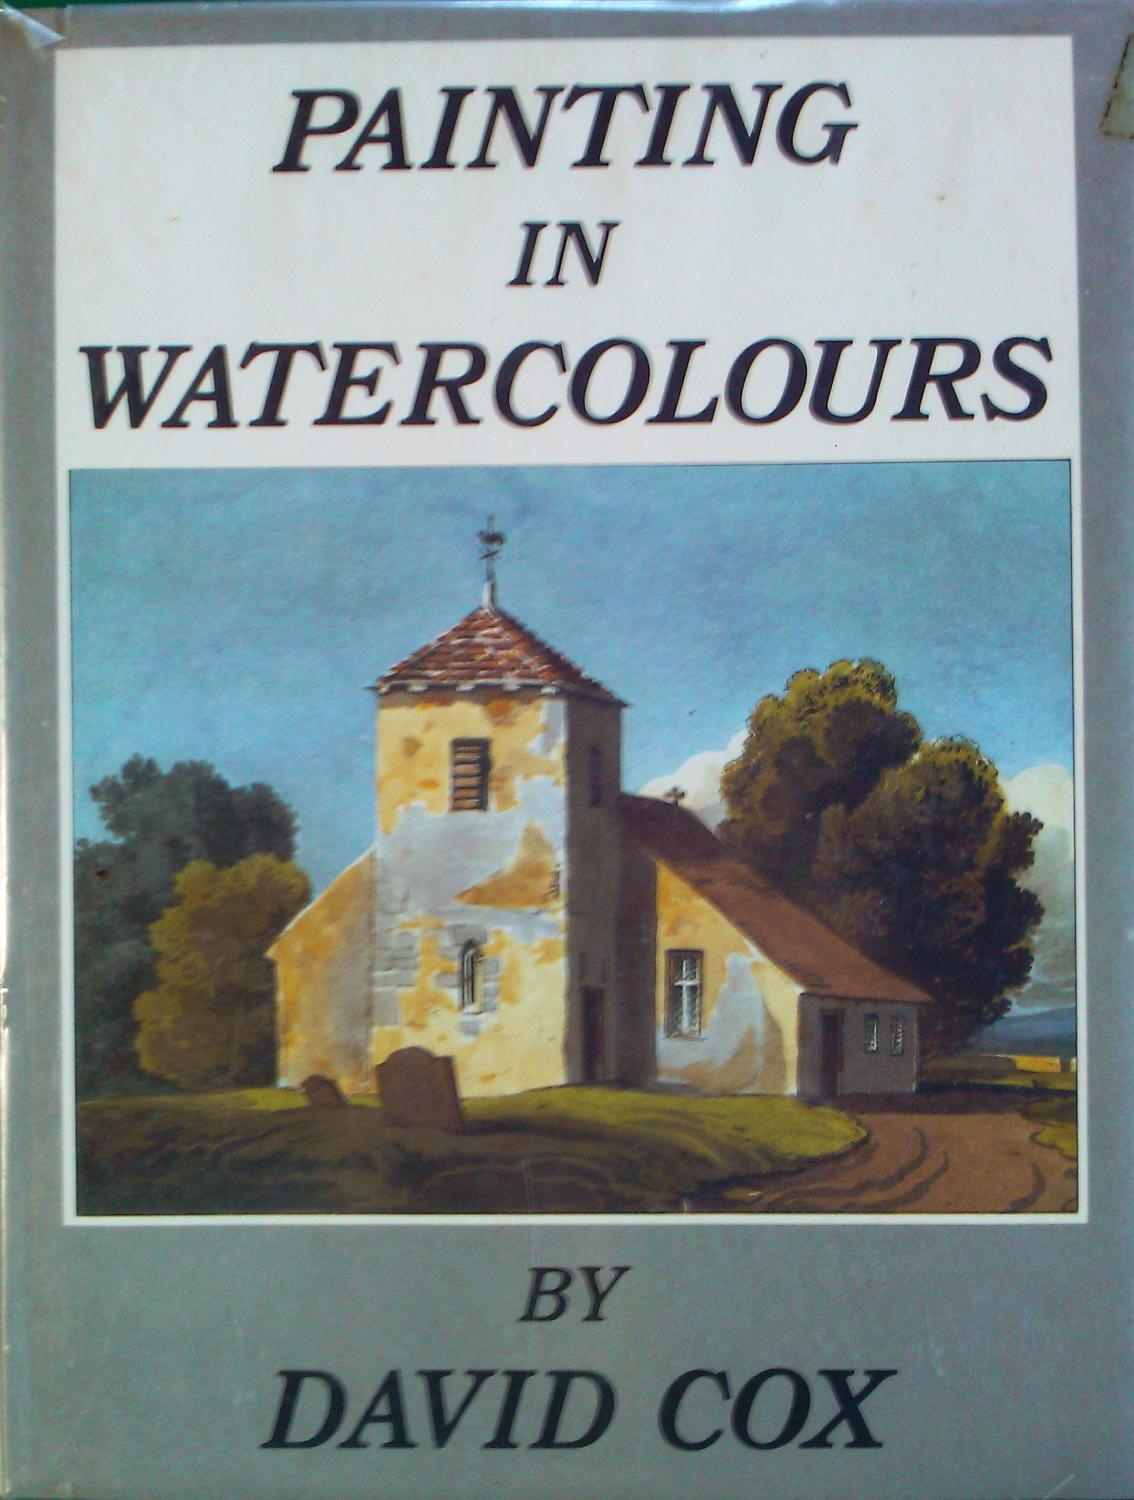 Painting In Watercolours. A Series of Progressive Lessons in the Art of Landscape Painting in Watercolours. - David Cox